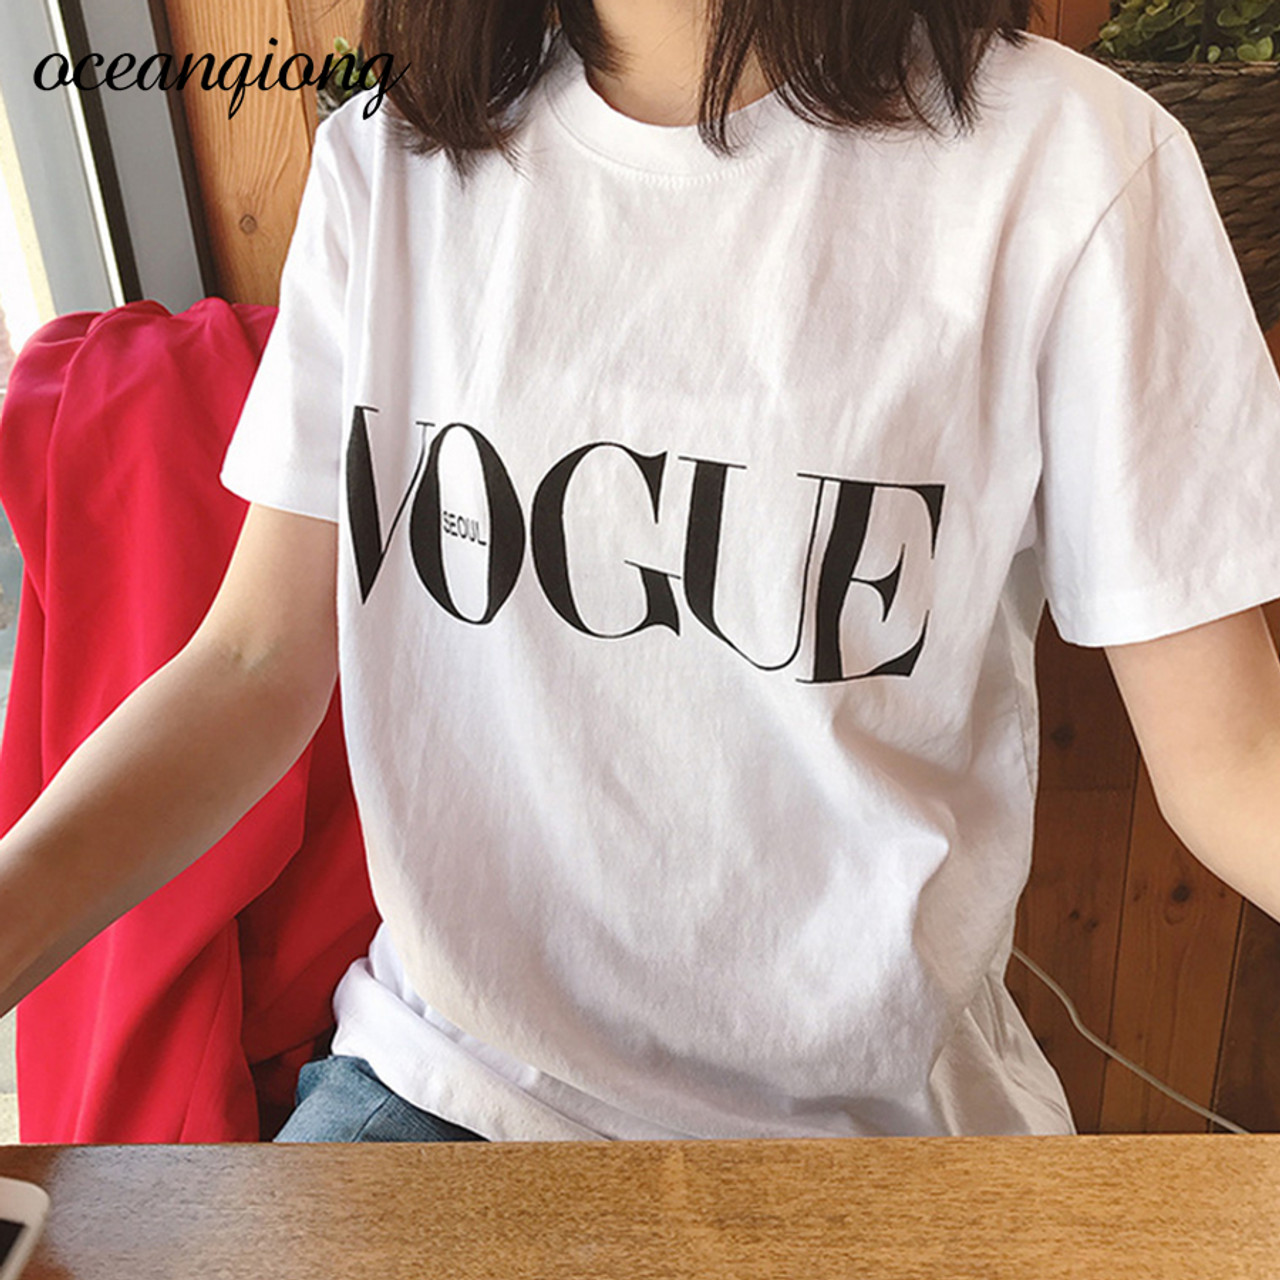 e4a9d515a4c1 ... 2018 Brand Summer Tops Fashion Clothes For Women VOGUE Letter Printed  Harajuku T Shirt Red Black ...